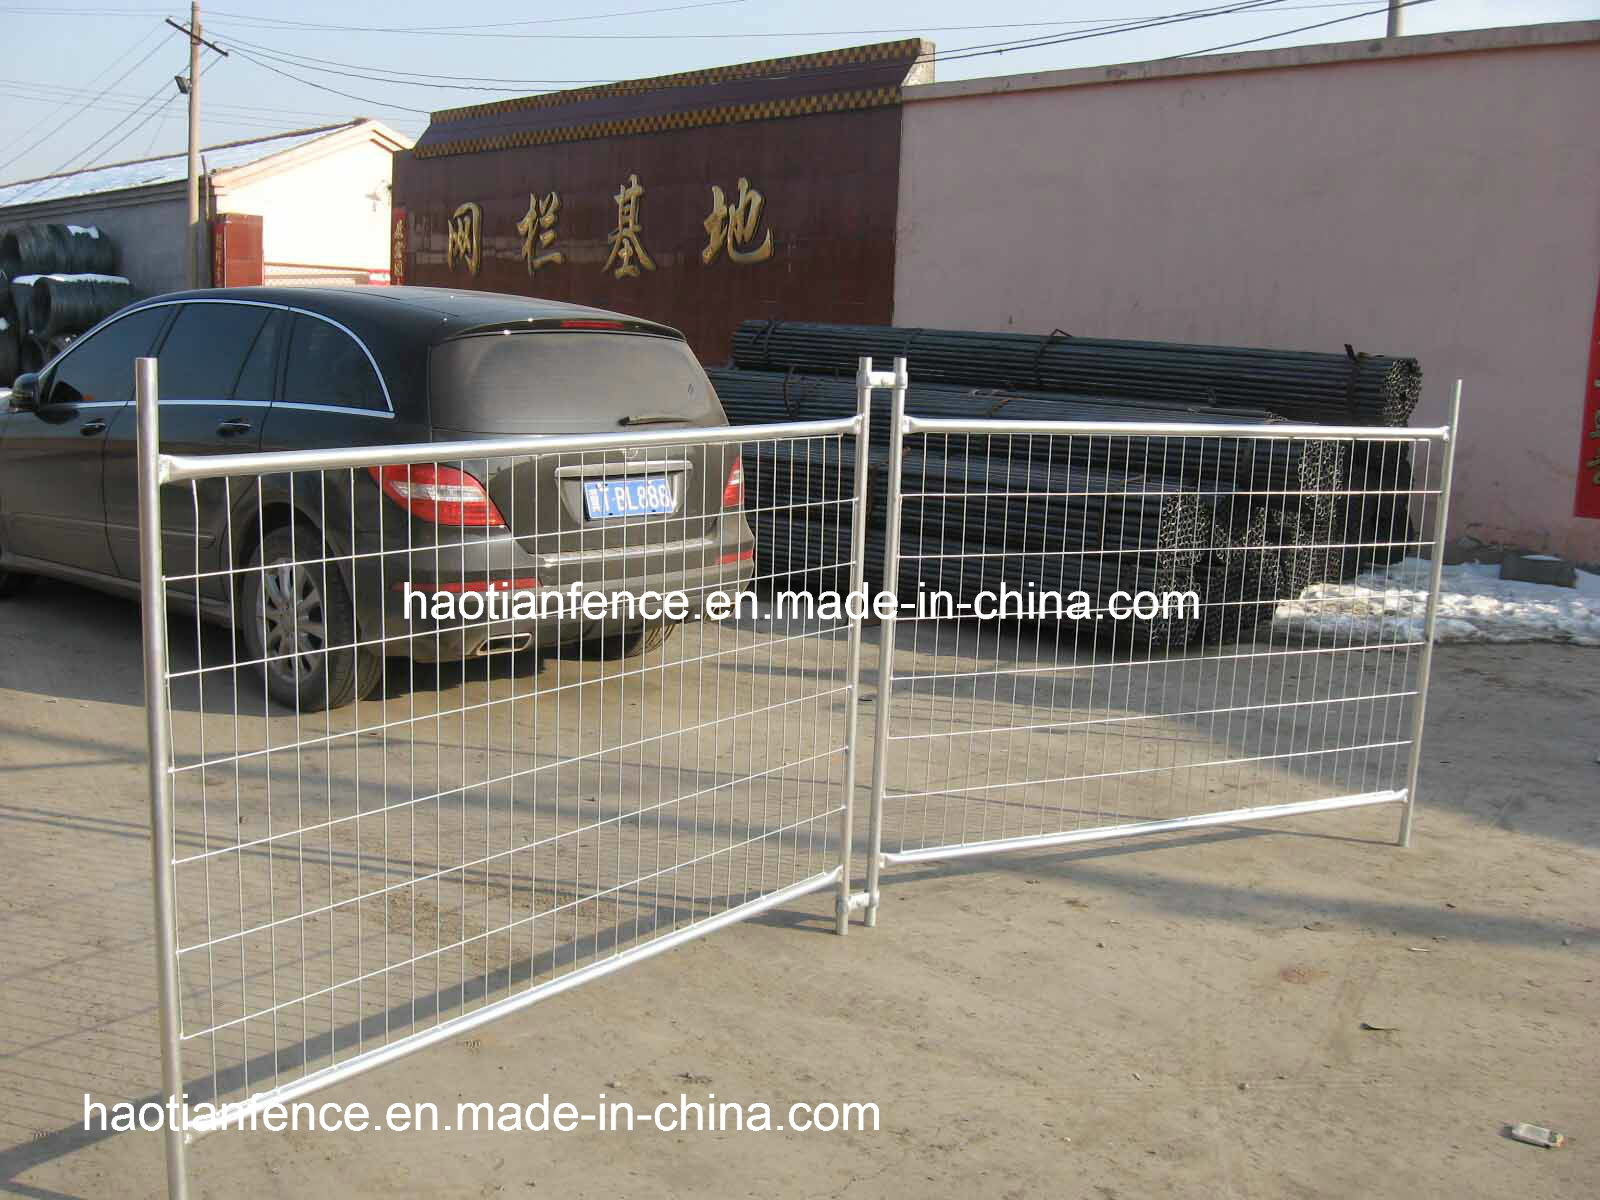 China Galvanized Temporary Welded Metal Wire Fence Panels - China ...